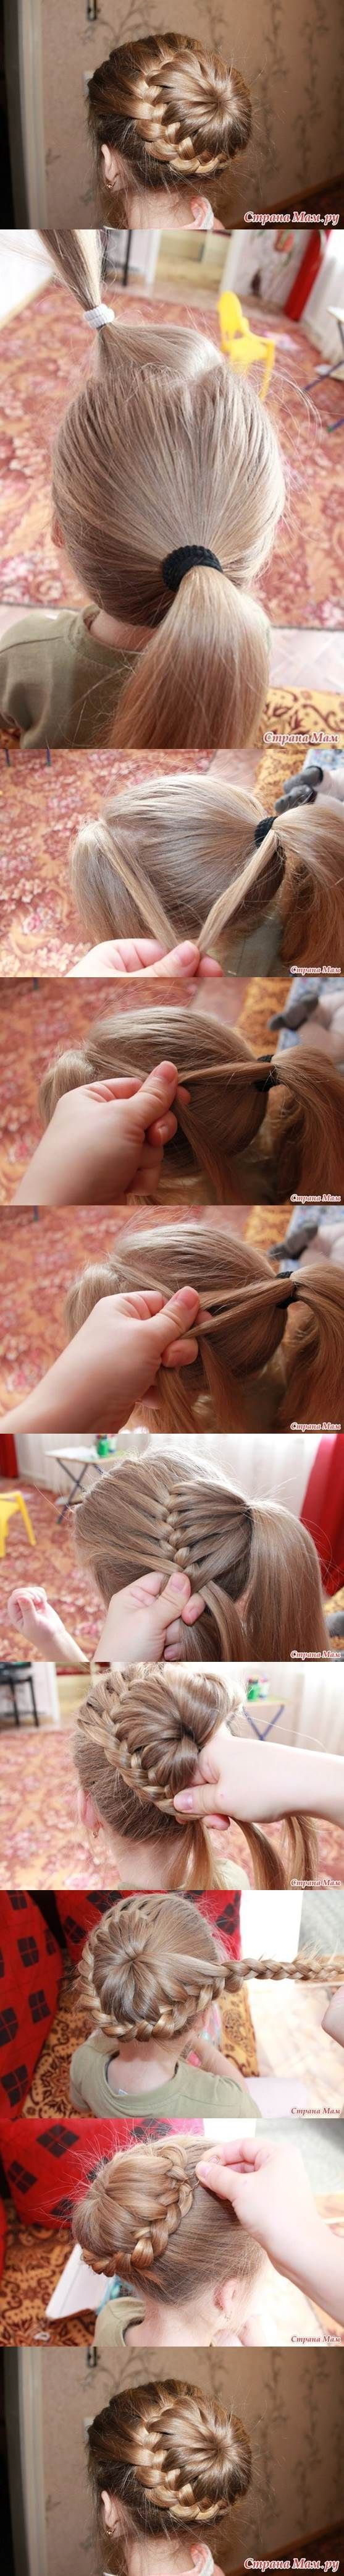 Something I want to try next time I see my niece! She has so much hair, I think it would be perfect!